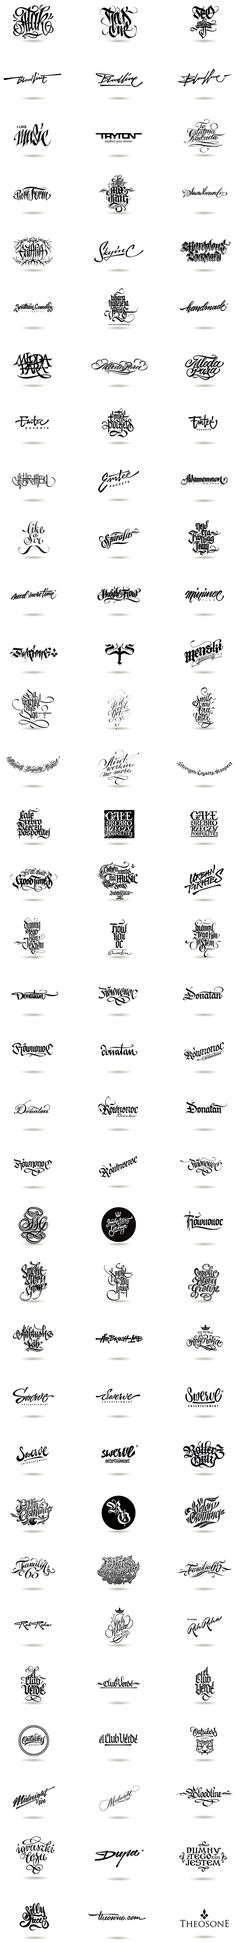 Logotype pack from 2010 - 2012 by Theosone